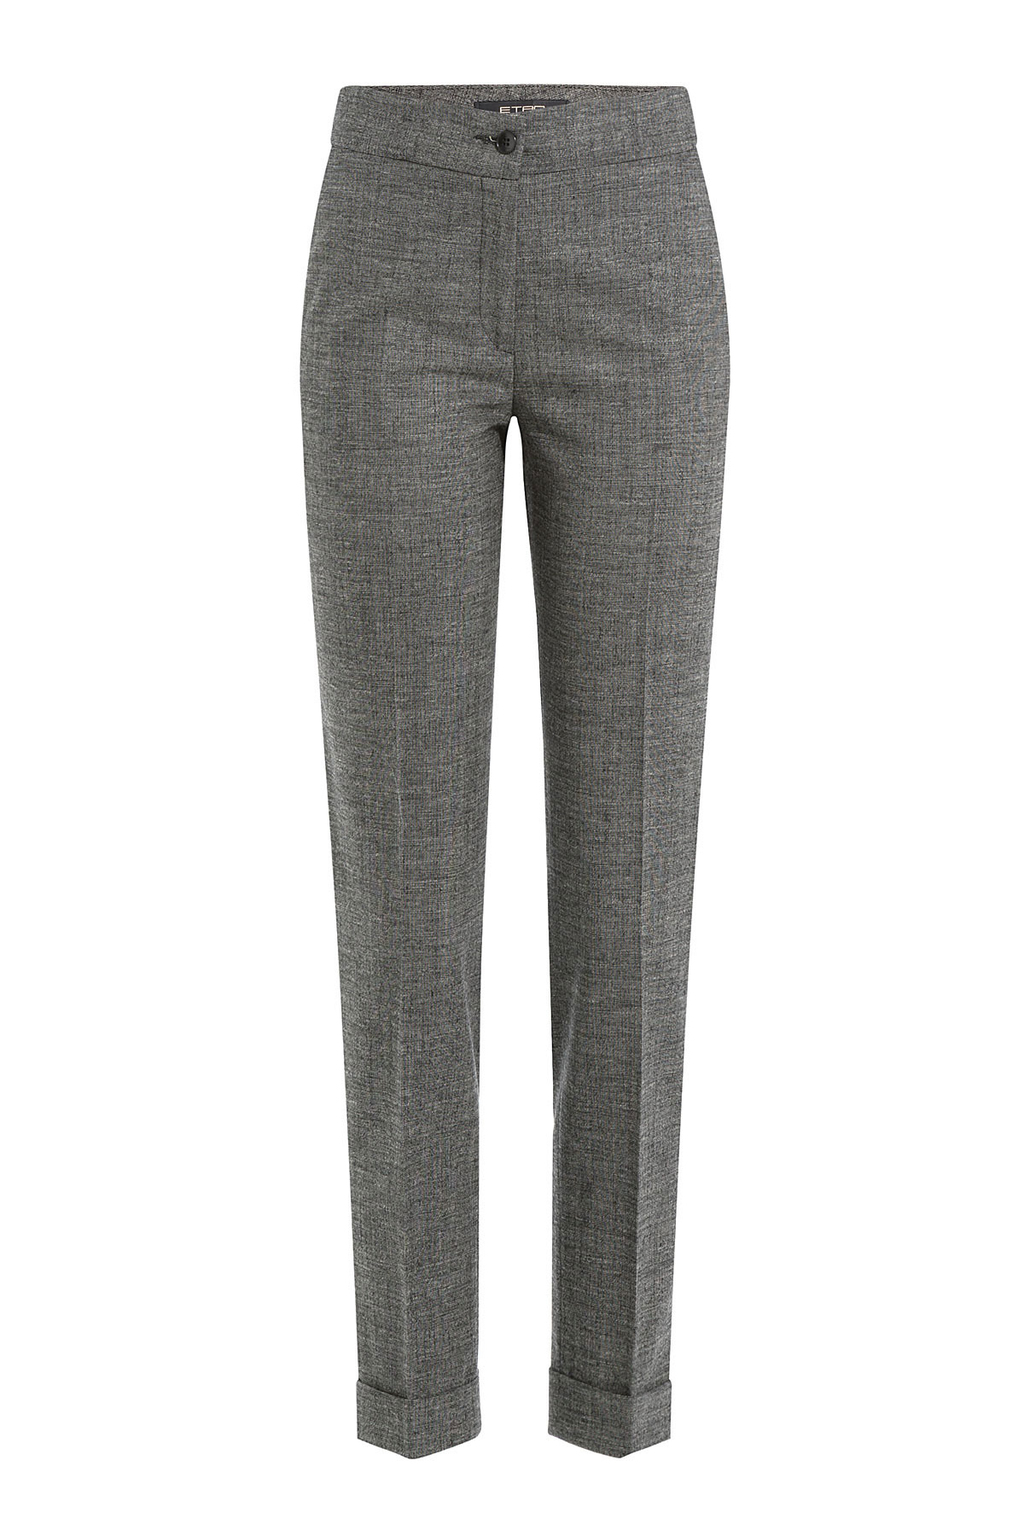 Wool Pants Grey - length: standard; waist: mid/regular rise; predominant colour: charcoal; occasions: work; fibres: cotton - mix; fit: straight leg; pattern type: fabric; texture group: woven light midweight; style: standard; pattern: marl; pattern size: light/subtle (bottom); season: s/s 2016; wardrobe: basic